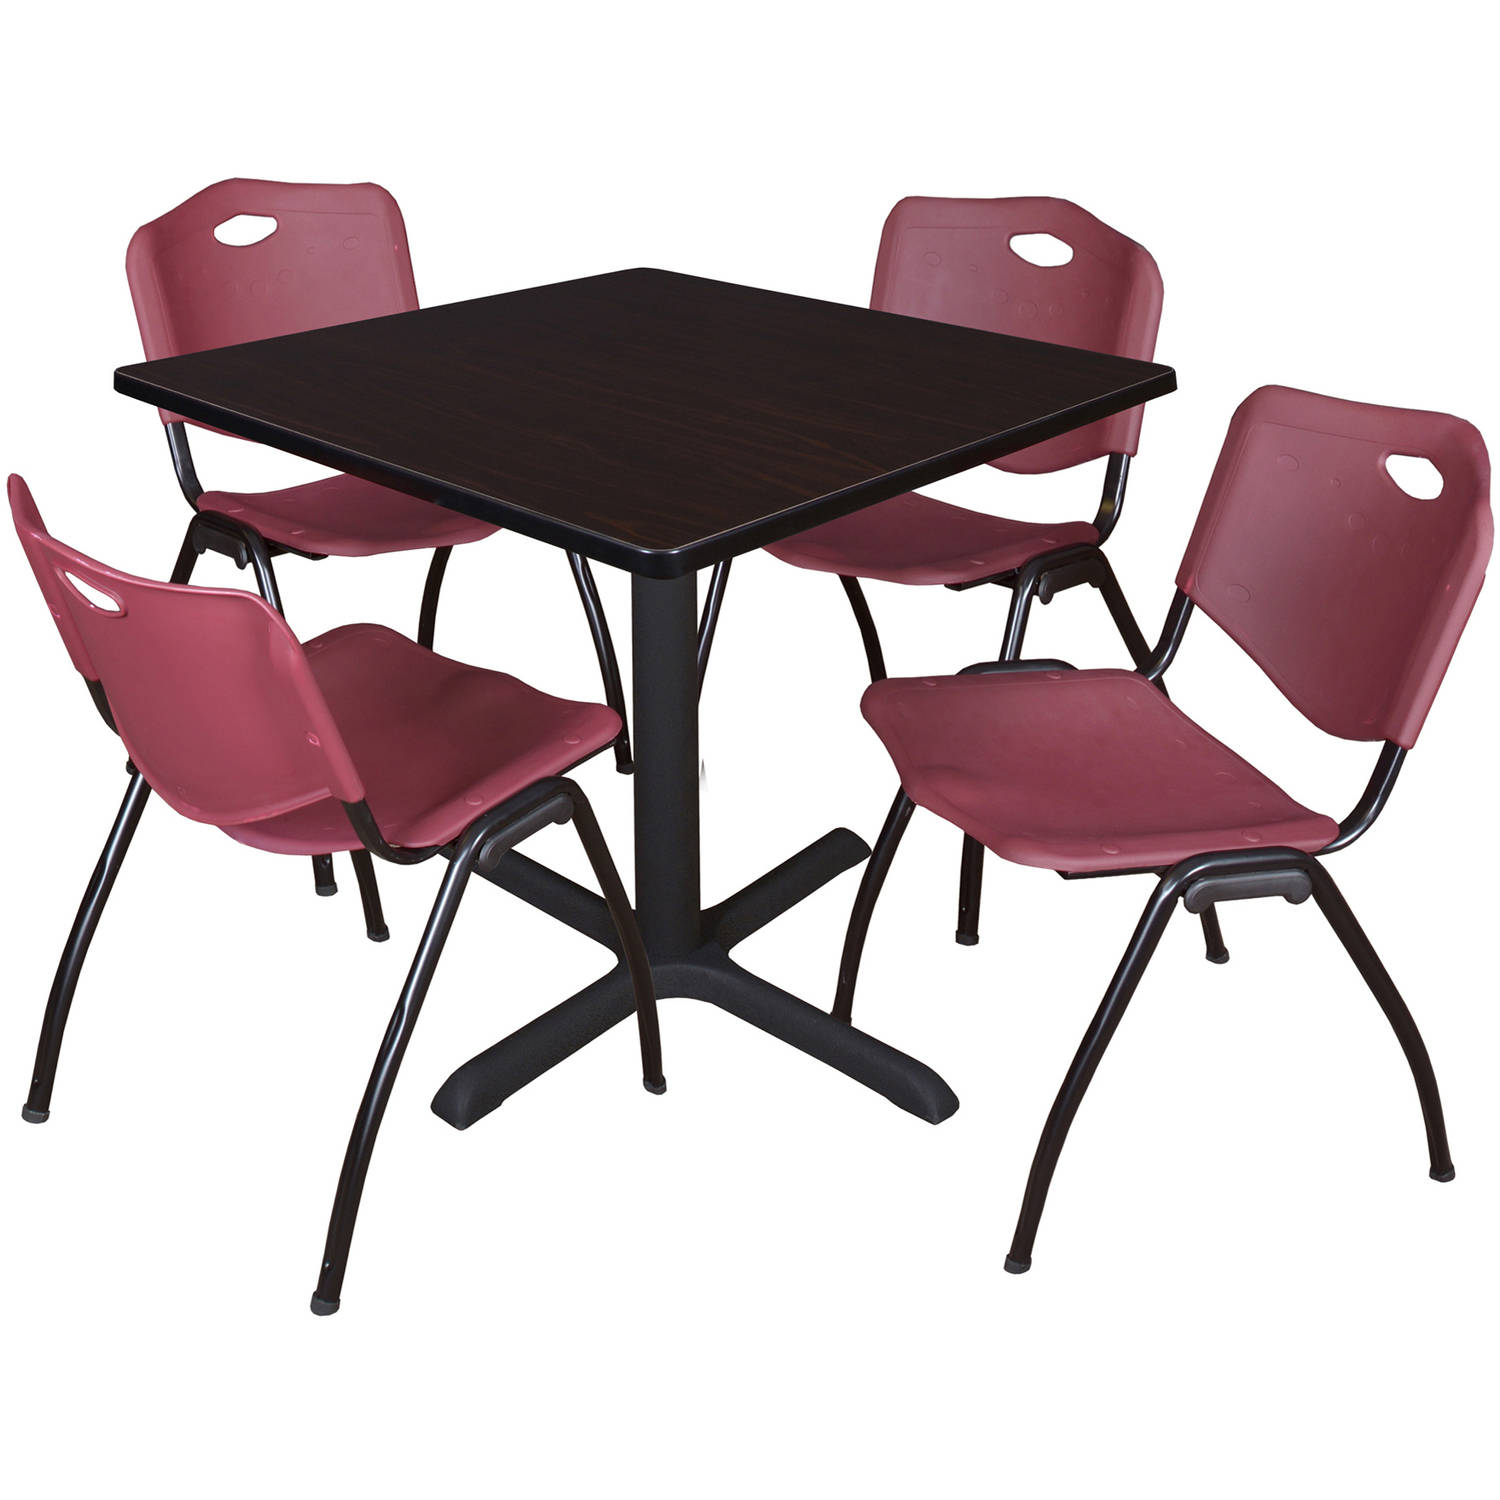 "Cain 36"" Mocha Walnut Square Breakroom Table and 4 'M' Stack Chairs, Multiple Colors"